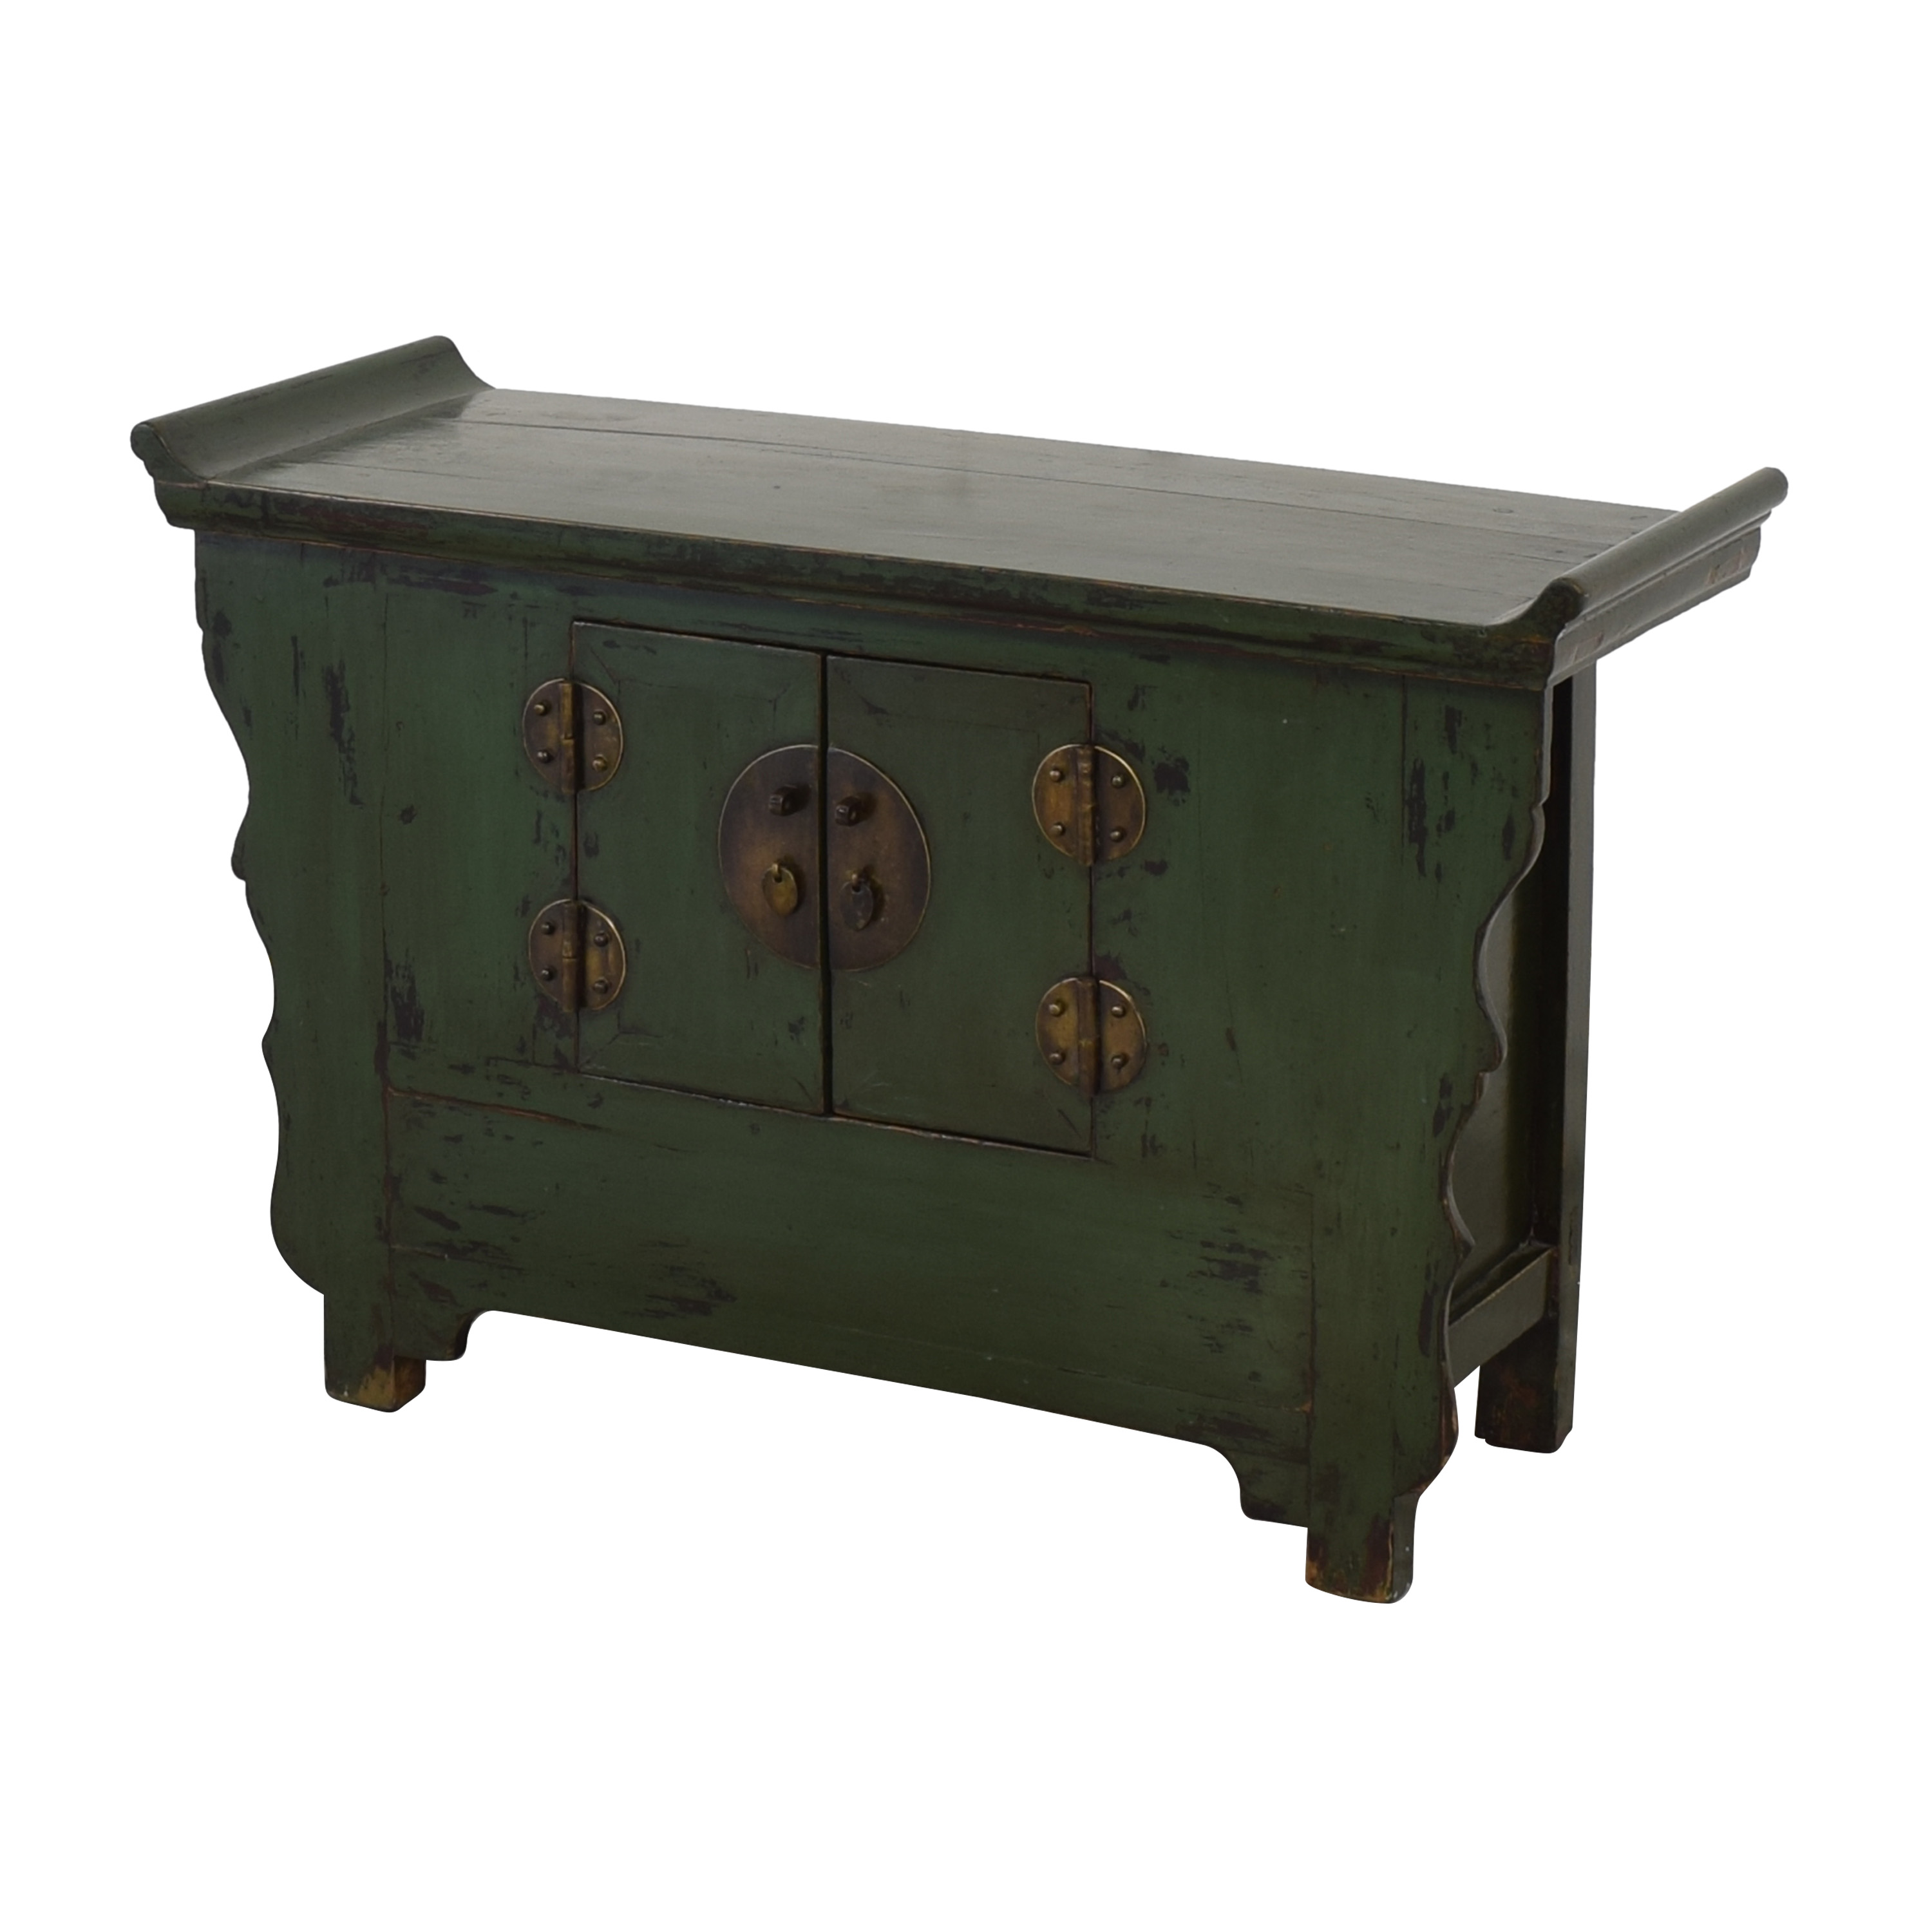 ABC Carpet & Home ABC Carpet & Home Asian Style Accent Table used